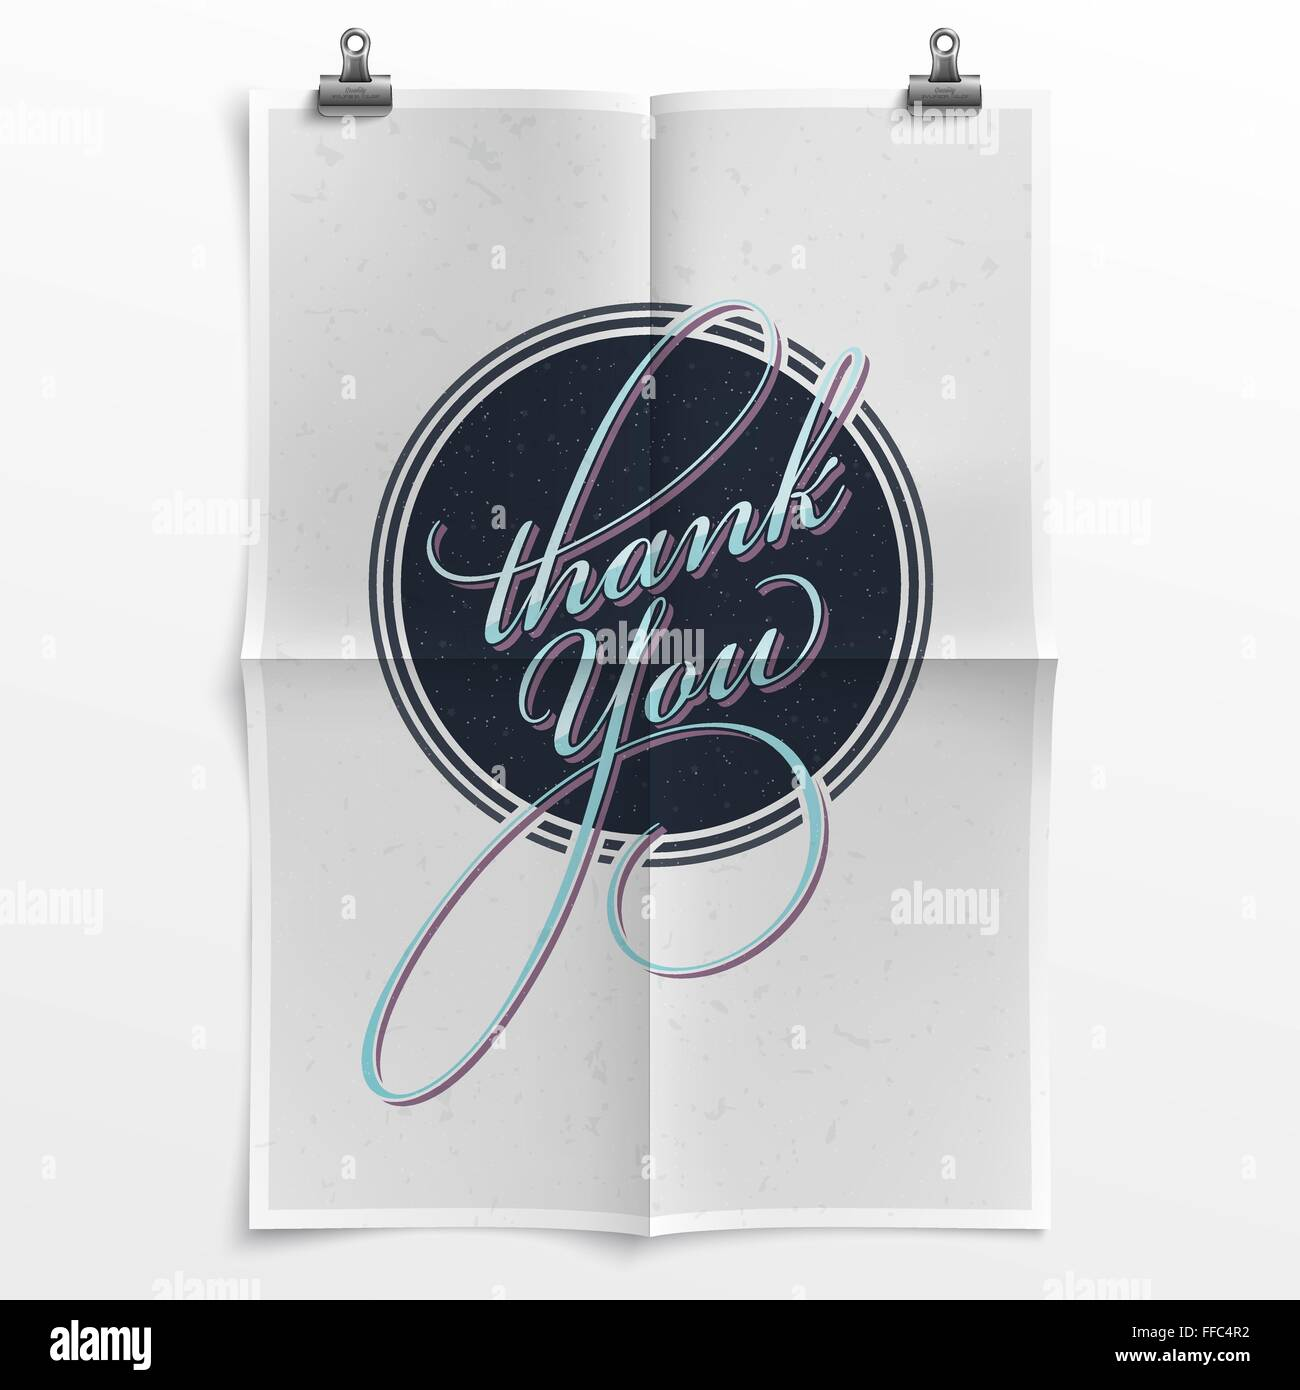 thank you note with a retrofuturistic touch on a folded poster stock